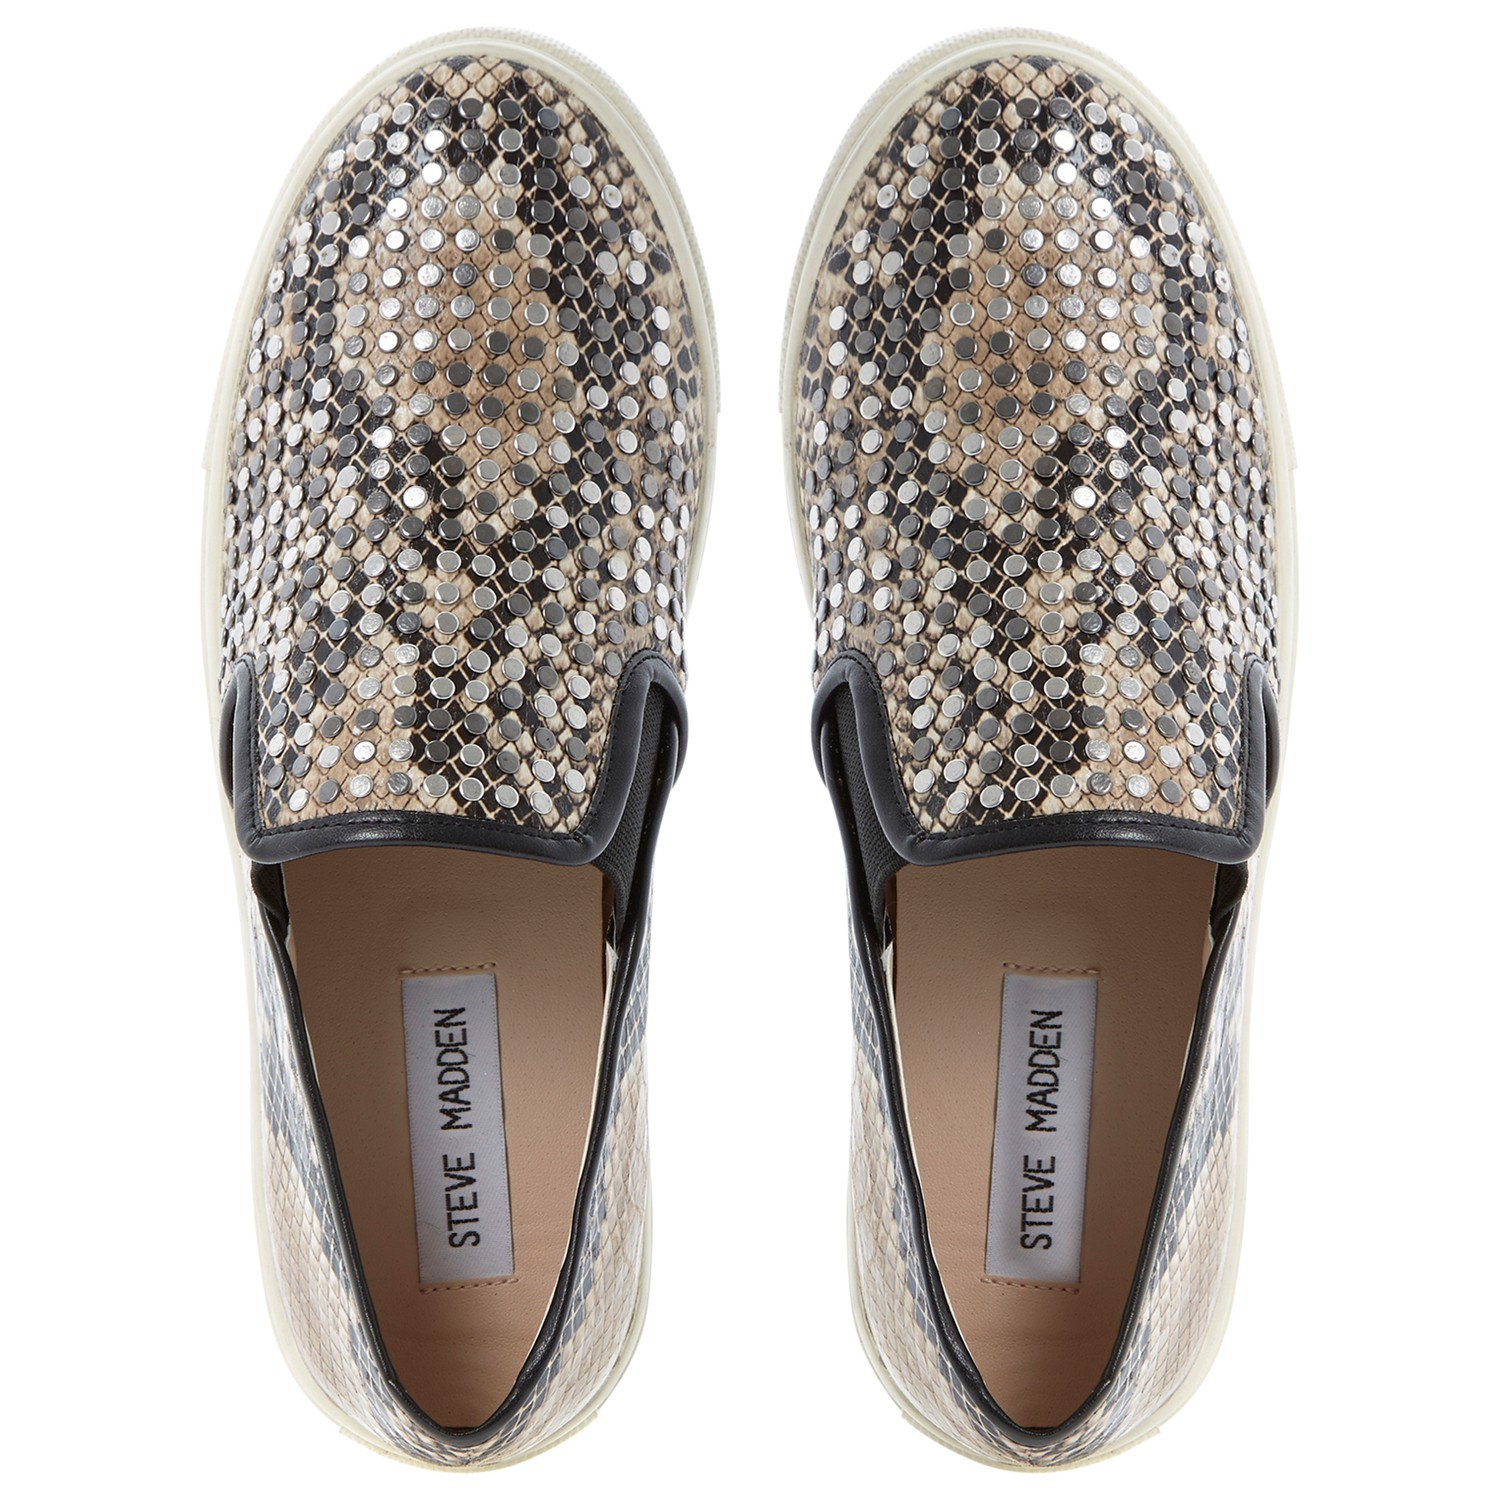 Steve Madden Denim Eros Slip-On Skate Shoes - For Women in Beige (Natural)